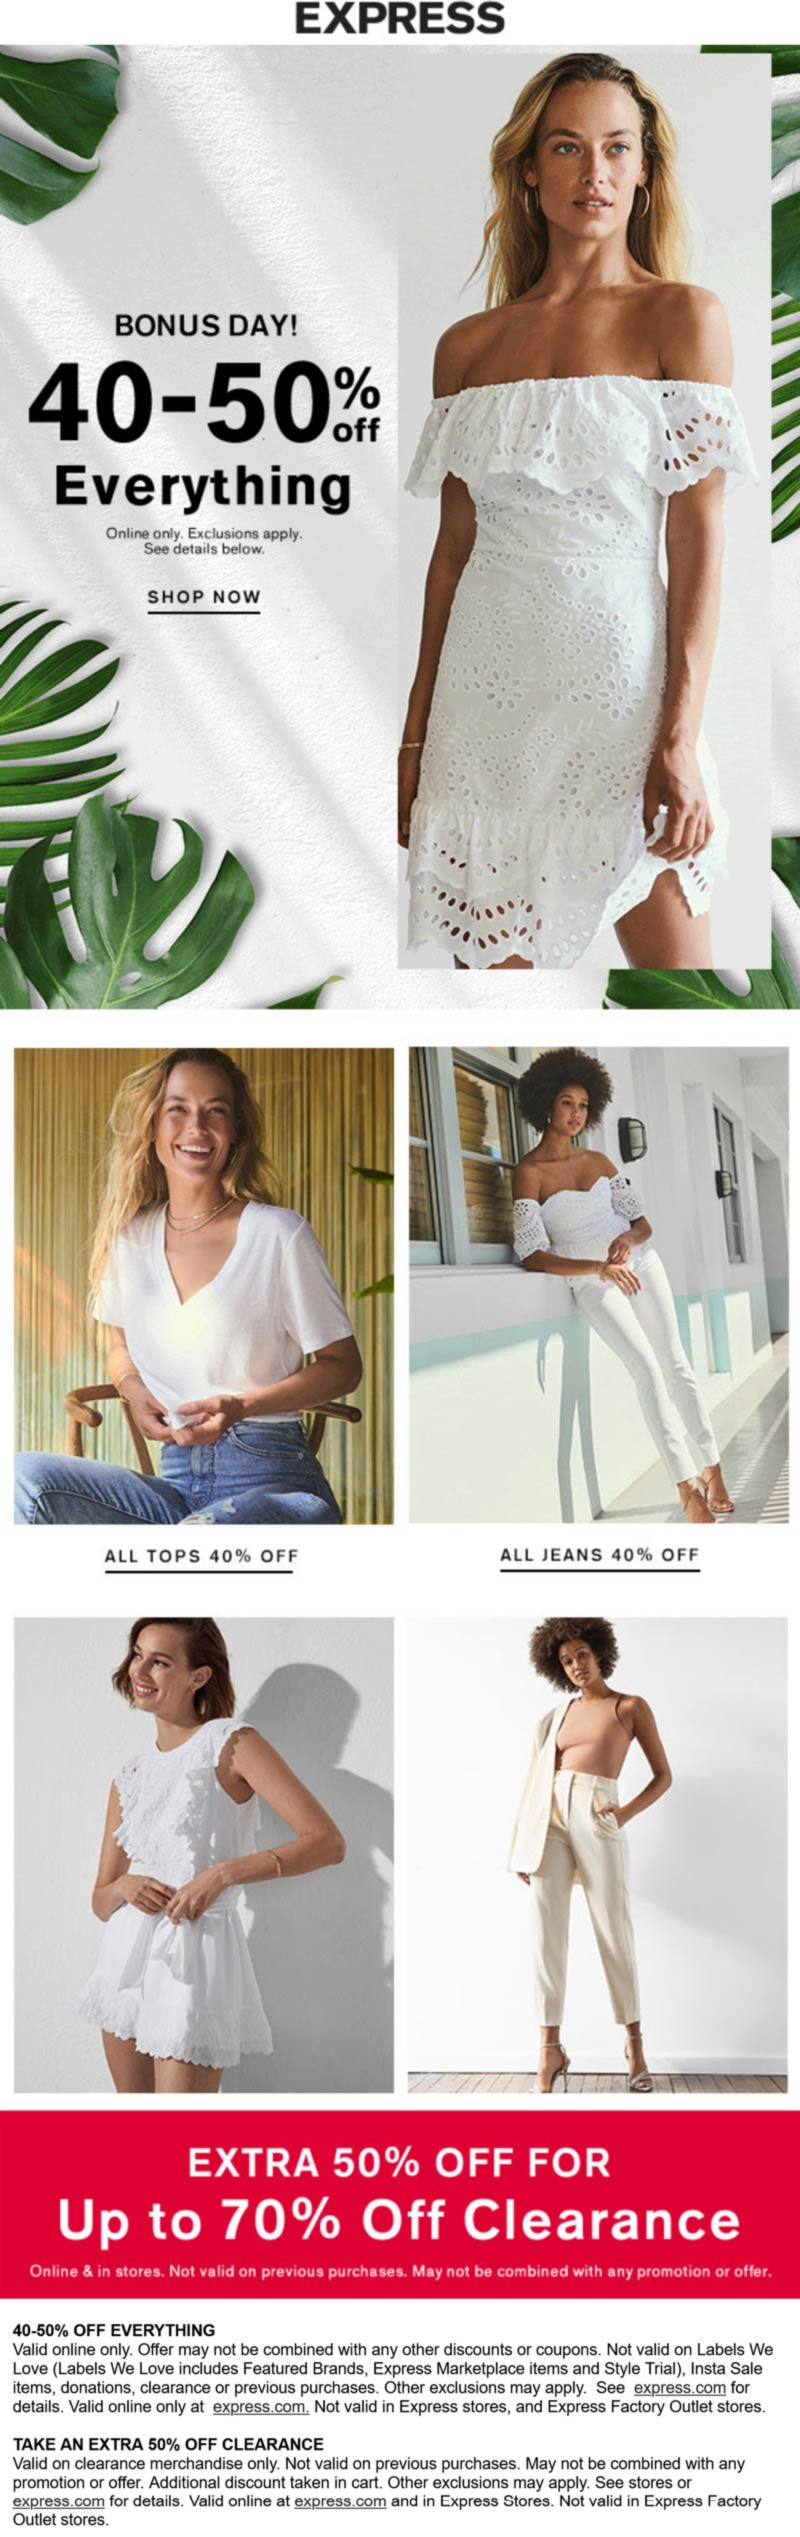 Express coupons & promo code for [April 2021]